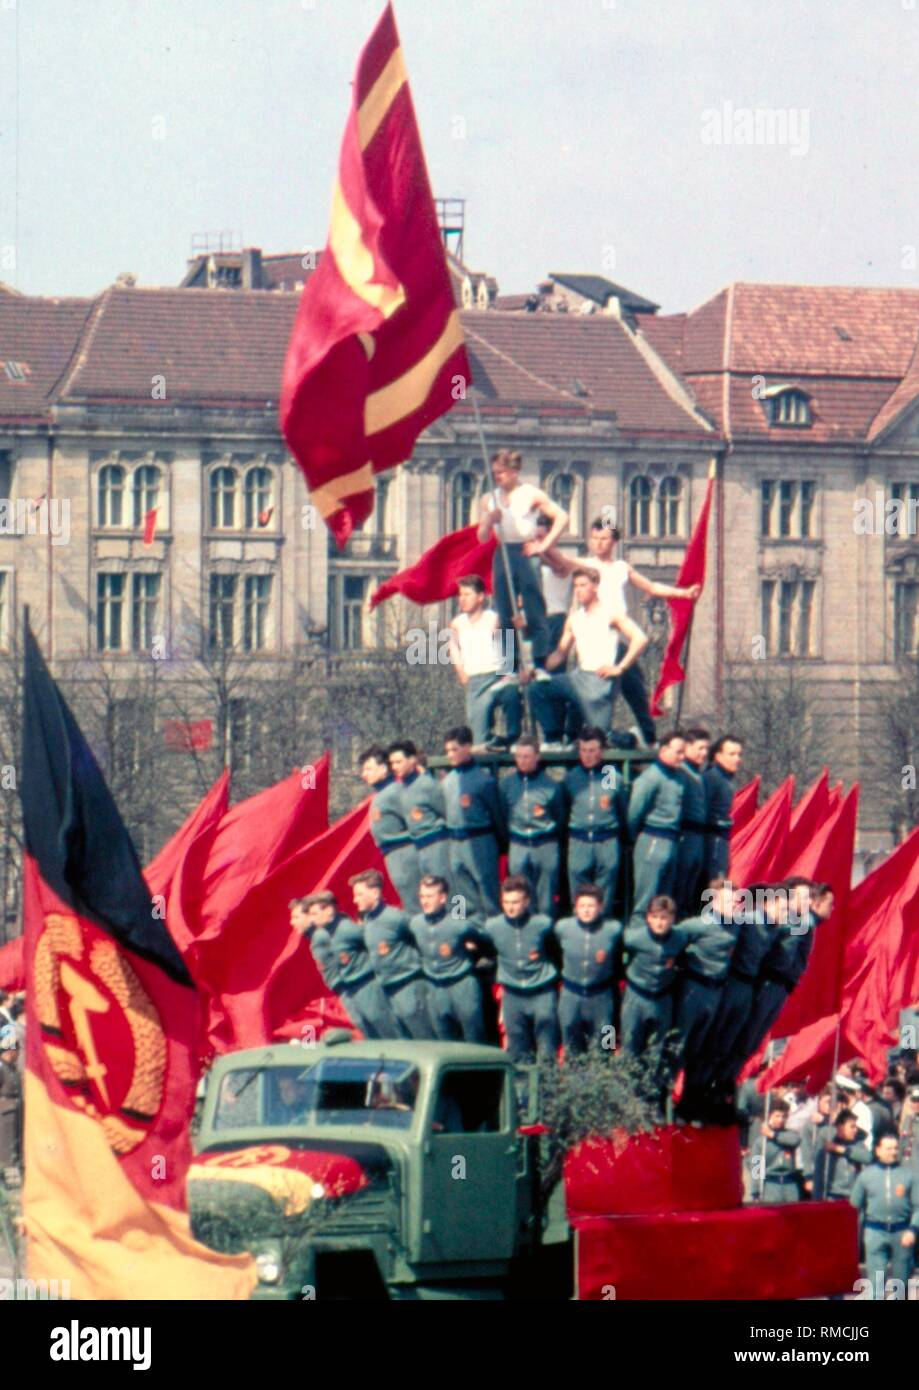 Members of the premilitary Gesellschaft fuer Sport und Technik (GST), (English: Sport and Technology Association) and the army sports club ASK Vorwaerts at a rally on May 1, 1959 on the Marx-Engels-Platz in East Berlin. - Stock Image